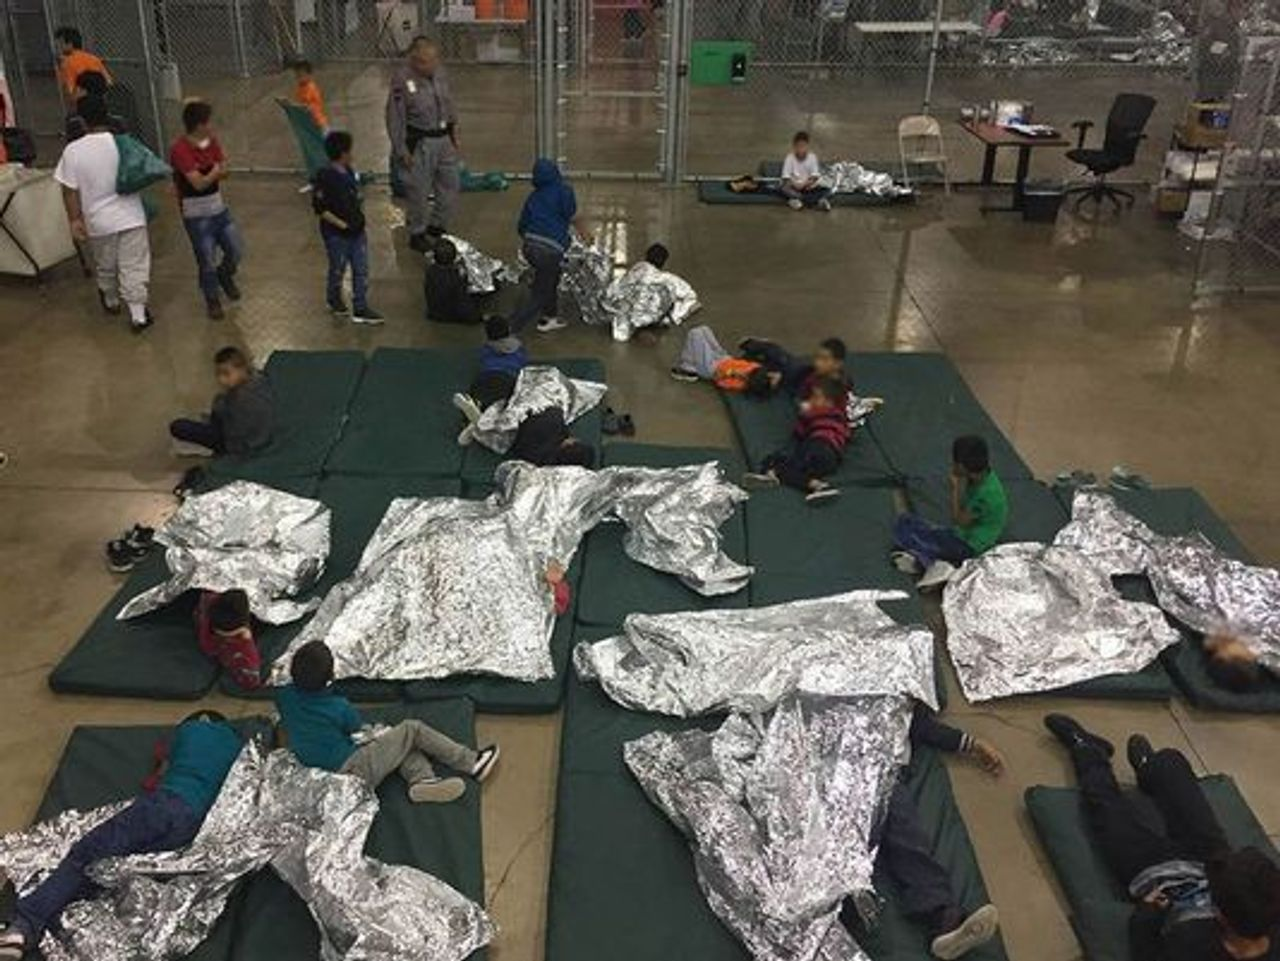 Children detained in a US Border Patrol Processing Center in McCallen, Texas in 2018